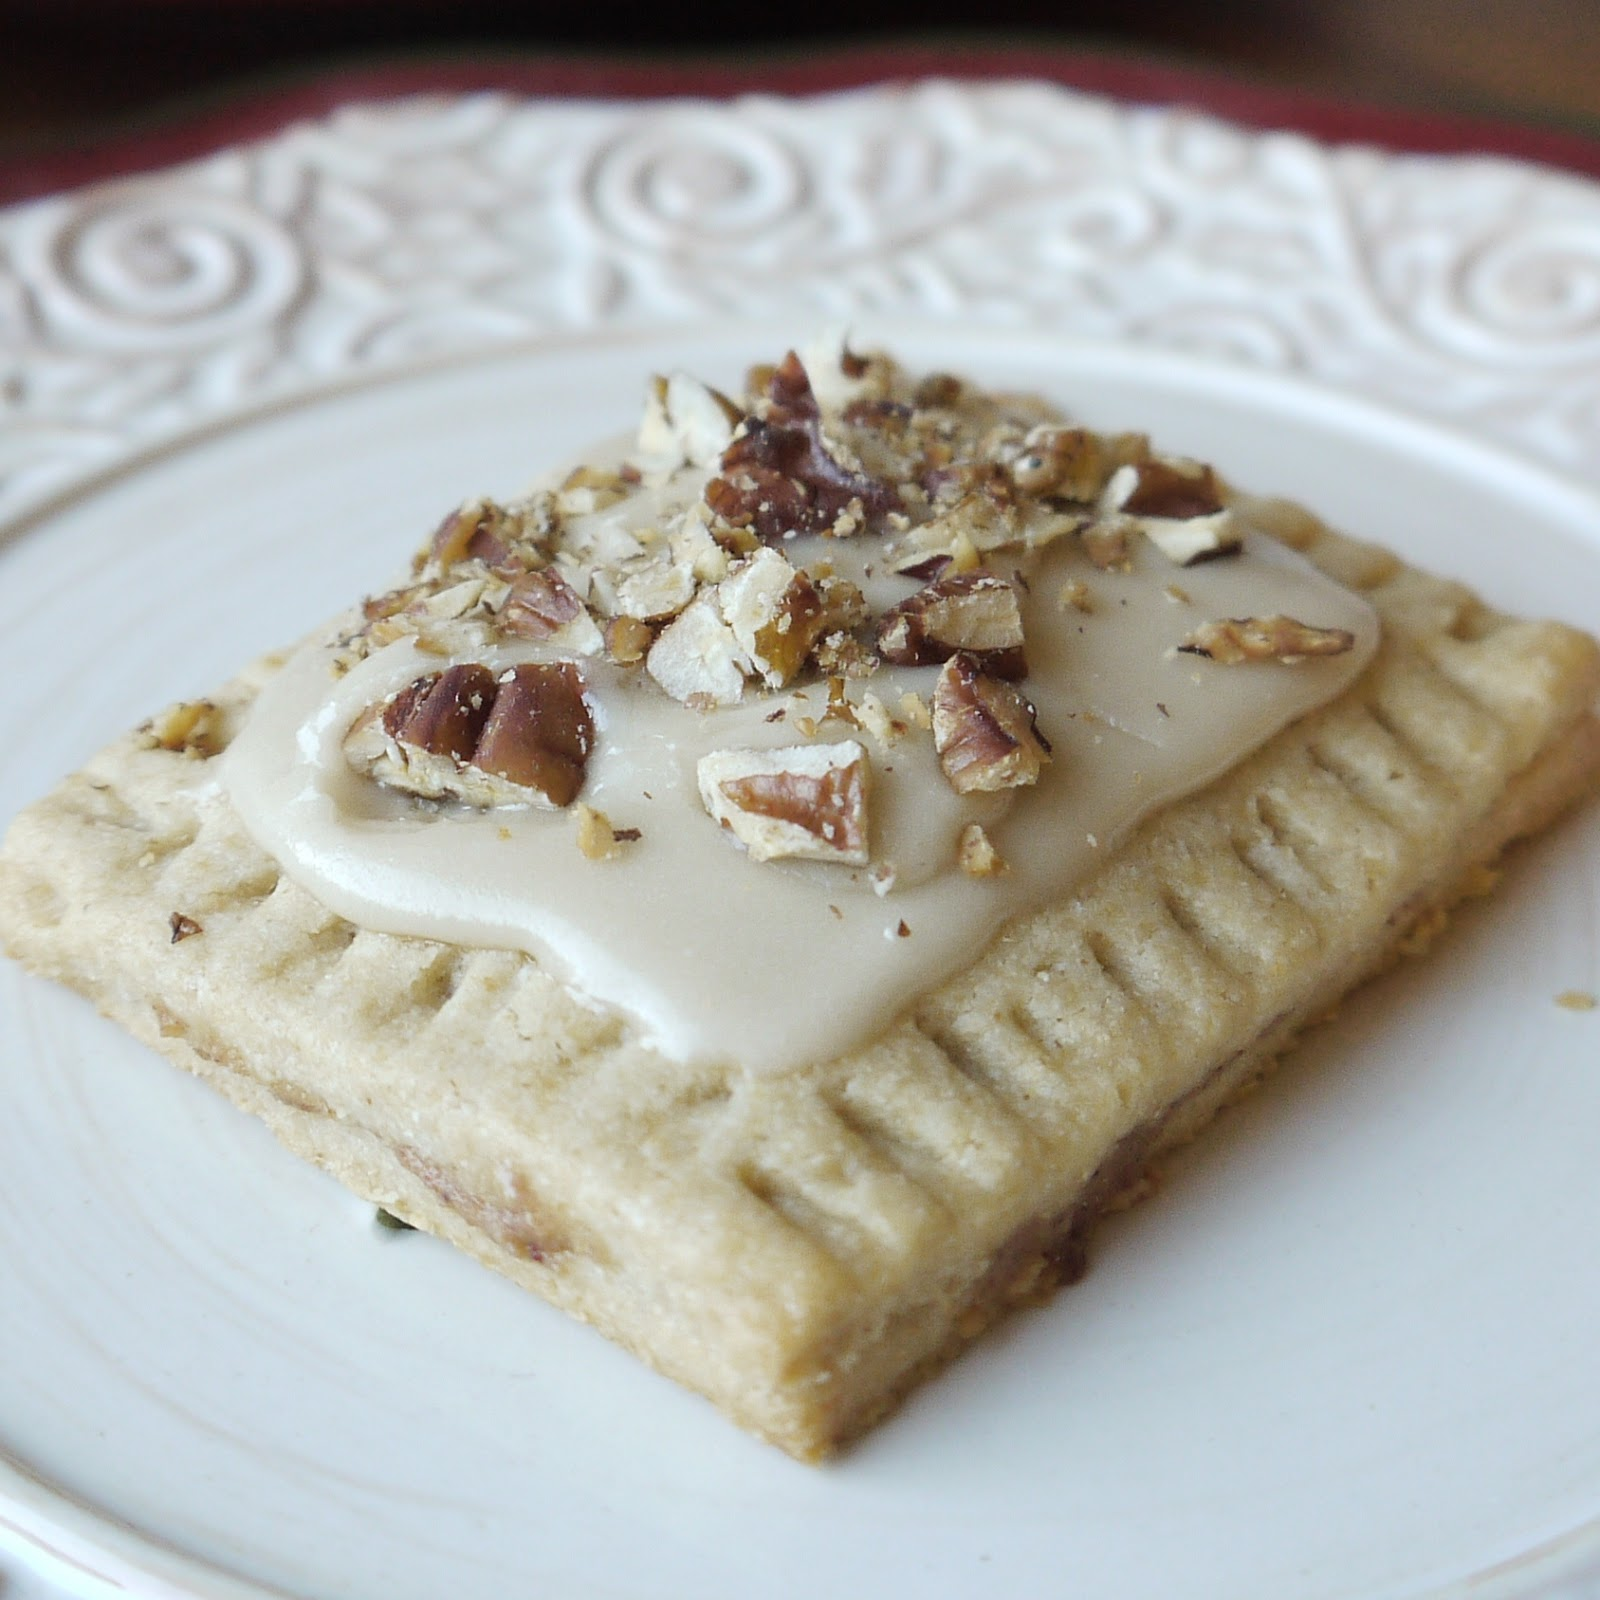 ... Ingredient: Apple Butter Poptarts with Maple Glaze and Toasted Pecans